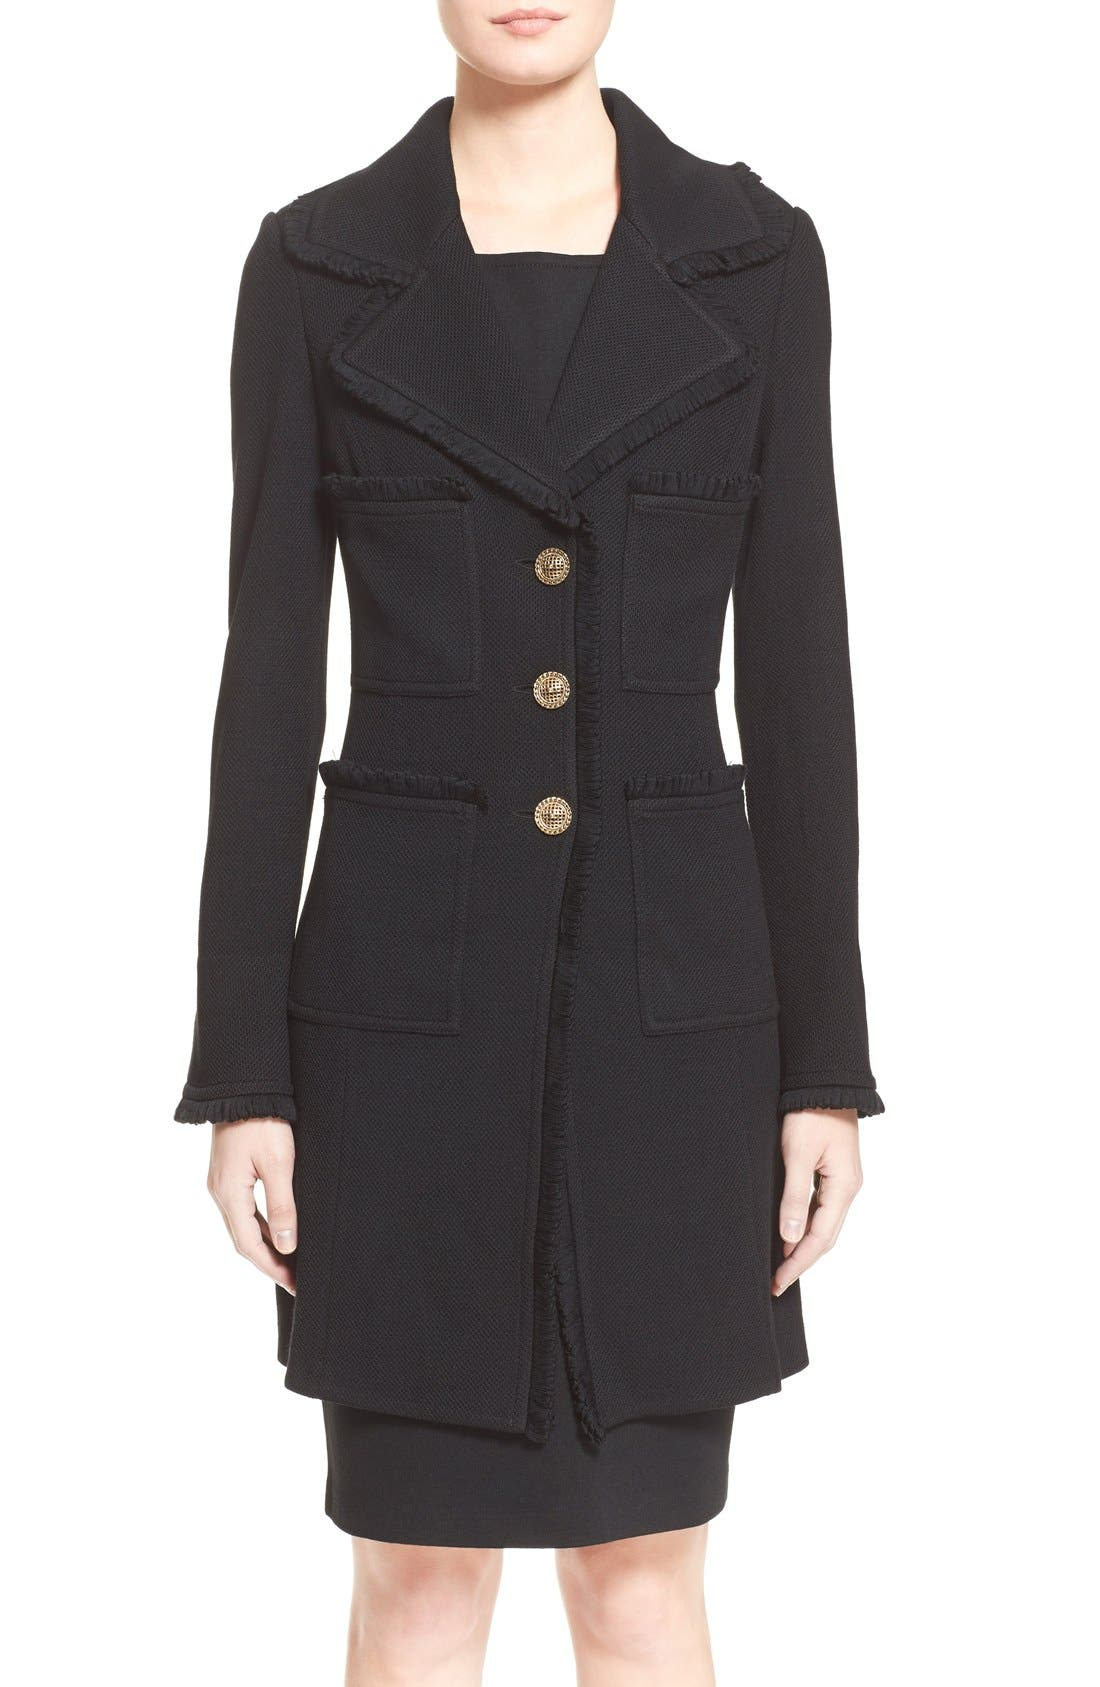 ST. JOHN COLLECTION Fringe Trim Milano Piqué Knit Coat, Main, color, CAVIAR